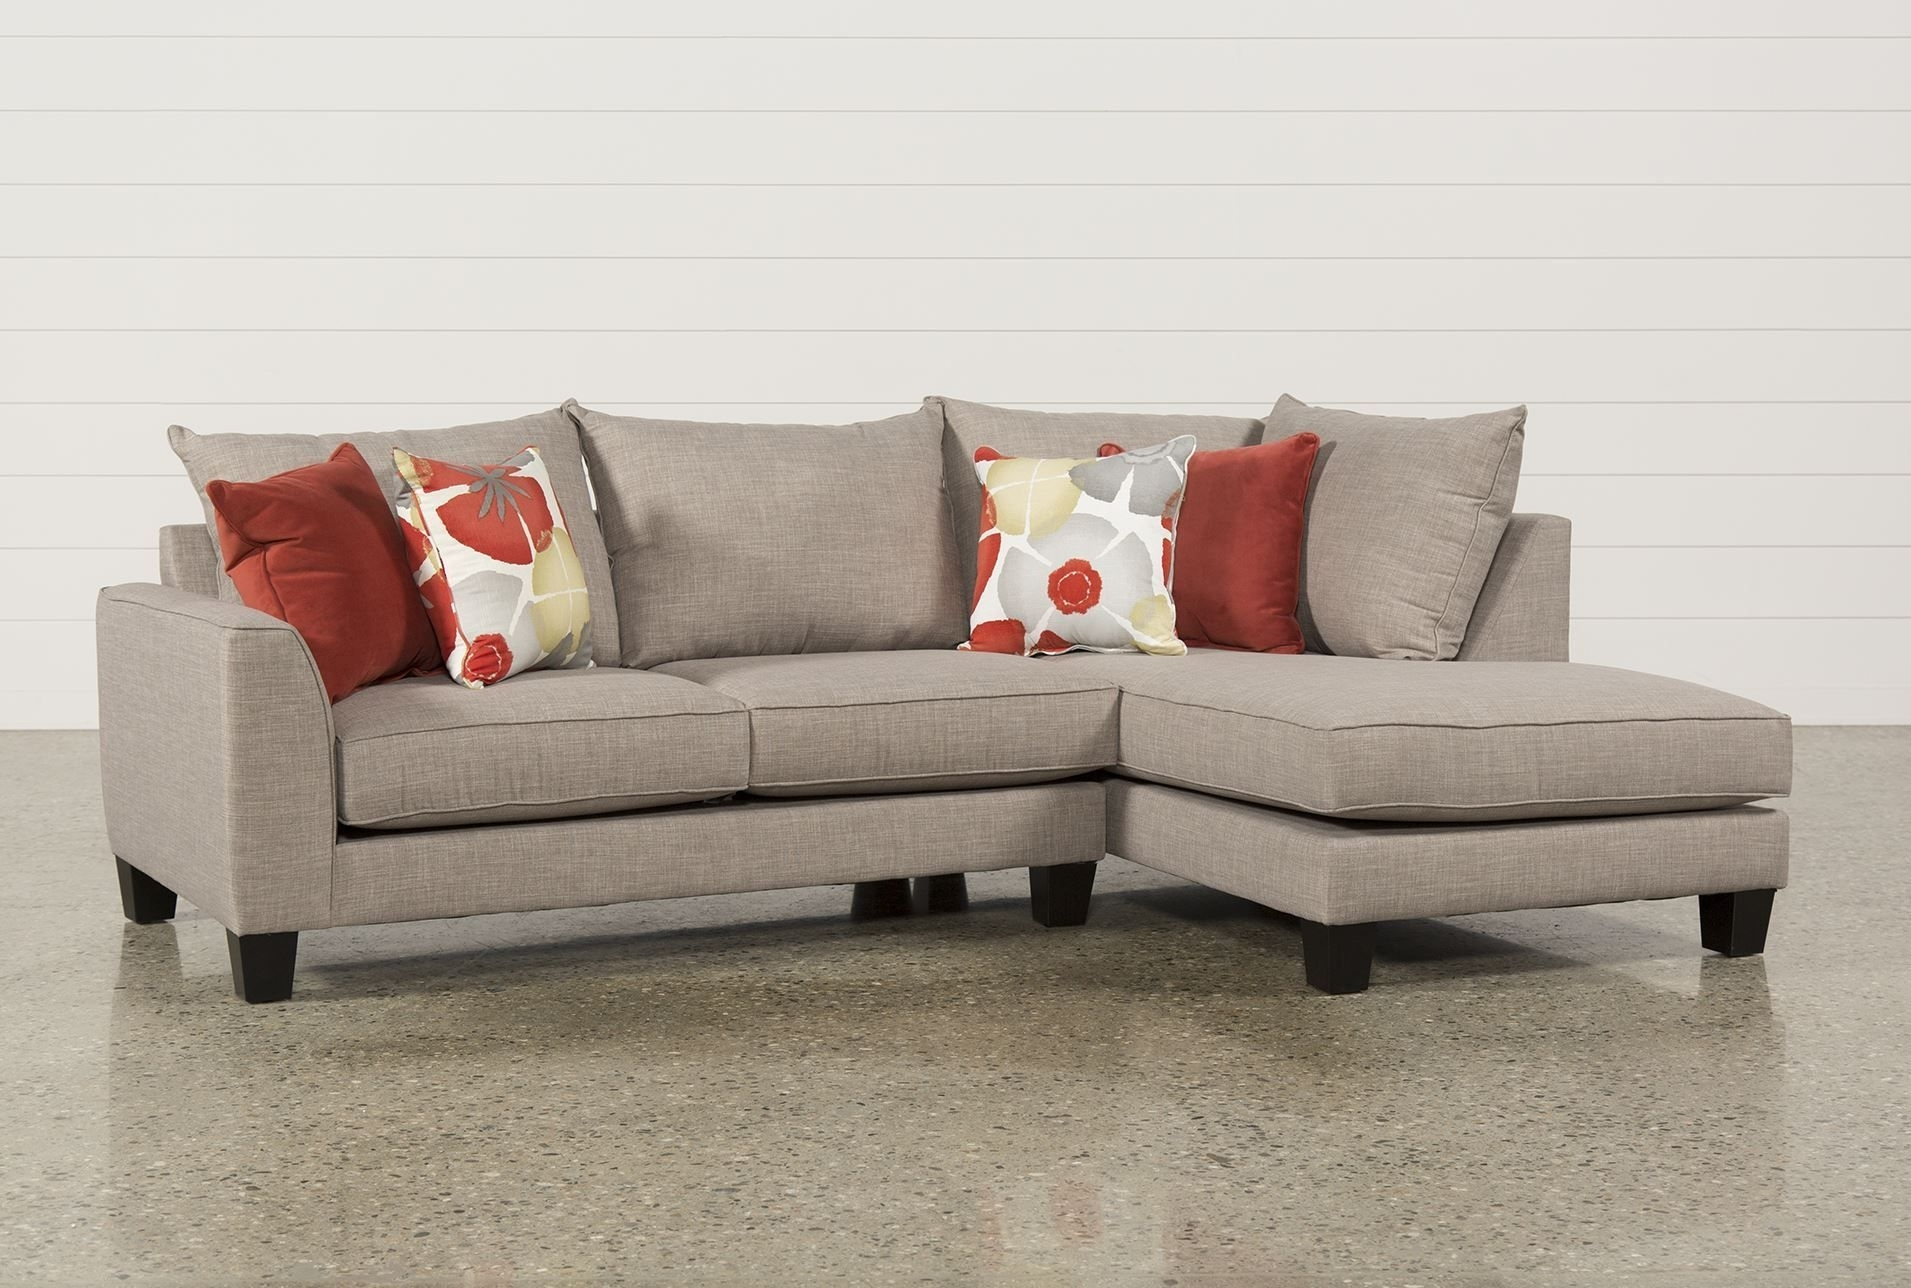 Kira 2 Piece Sectional W/raf Chaise | Home Nesting Interior Design Intended For Delano 2 Piece Sectionals With Raf Oversized Chaise (View 11 of 25)